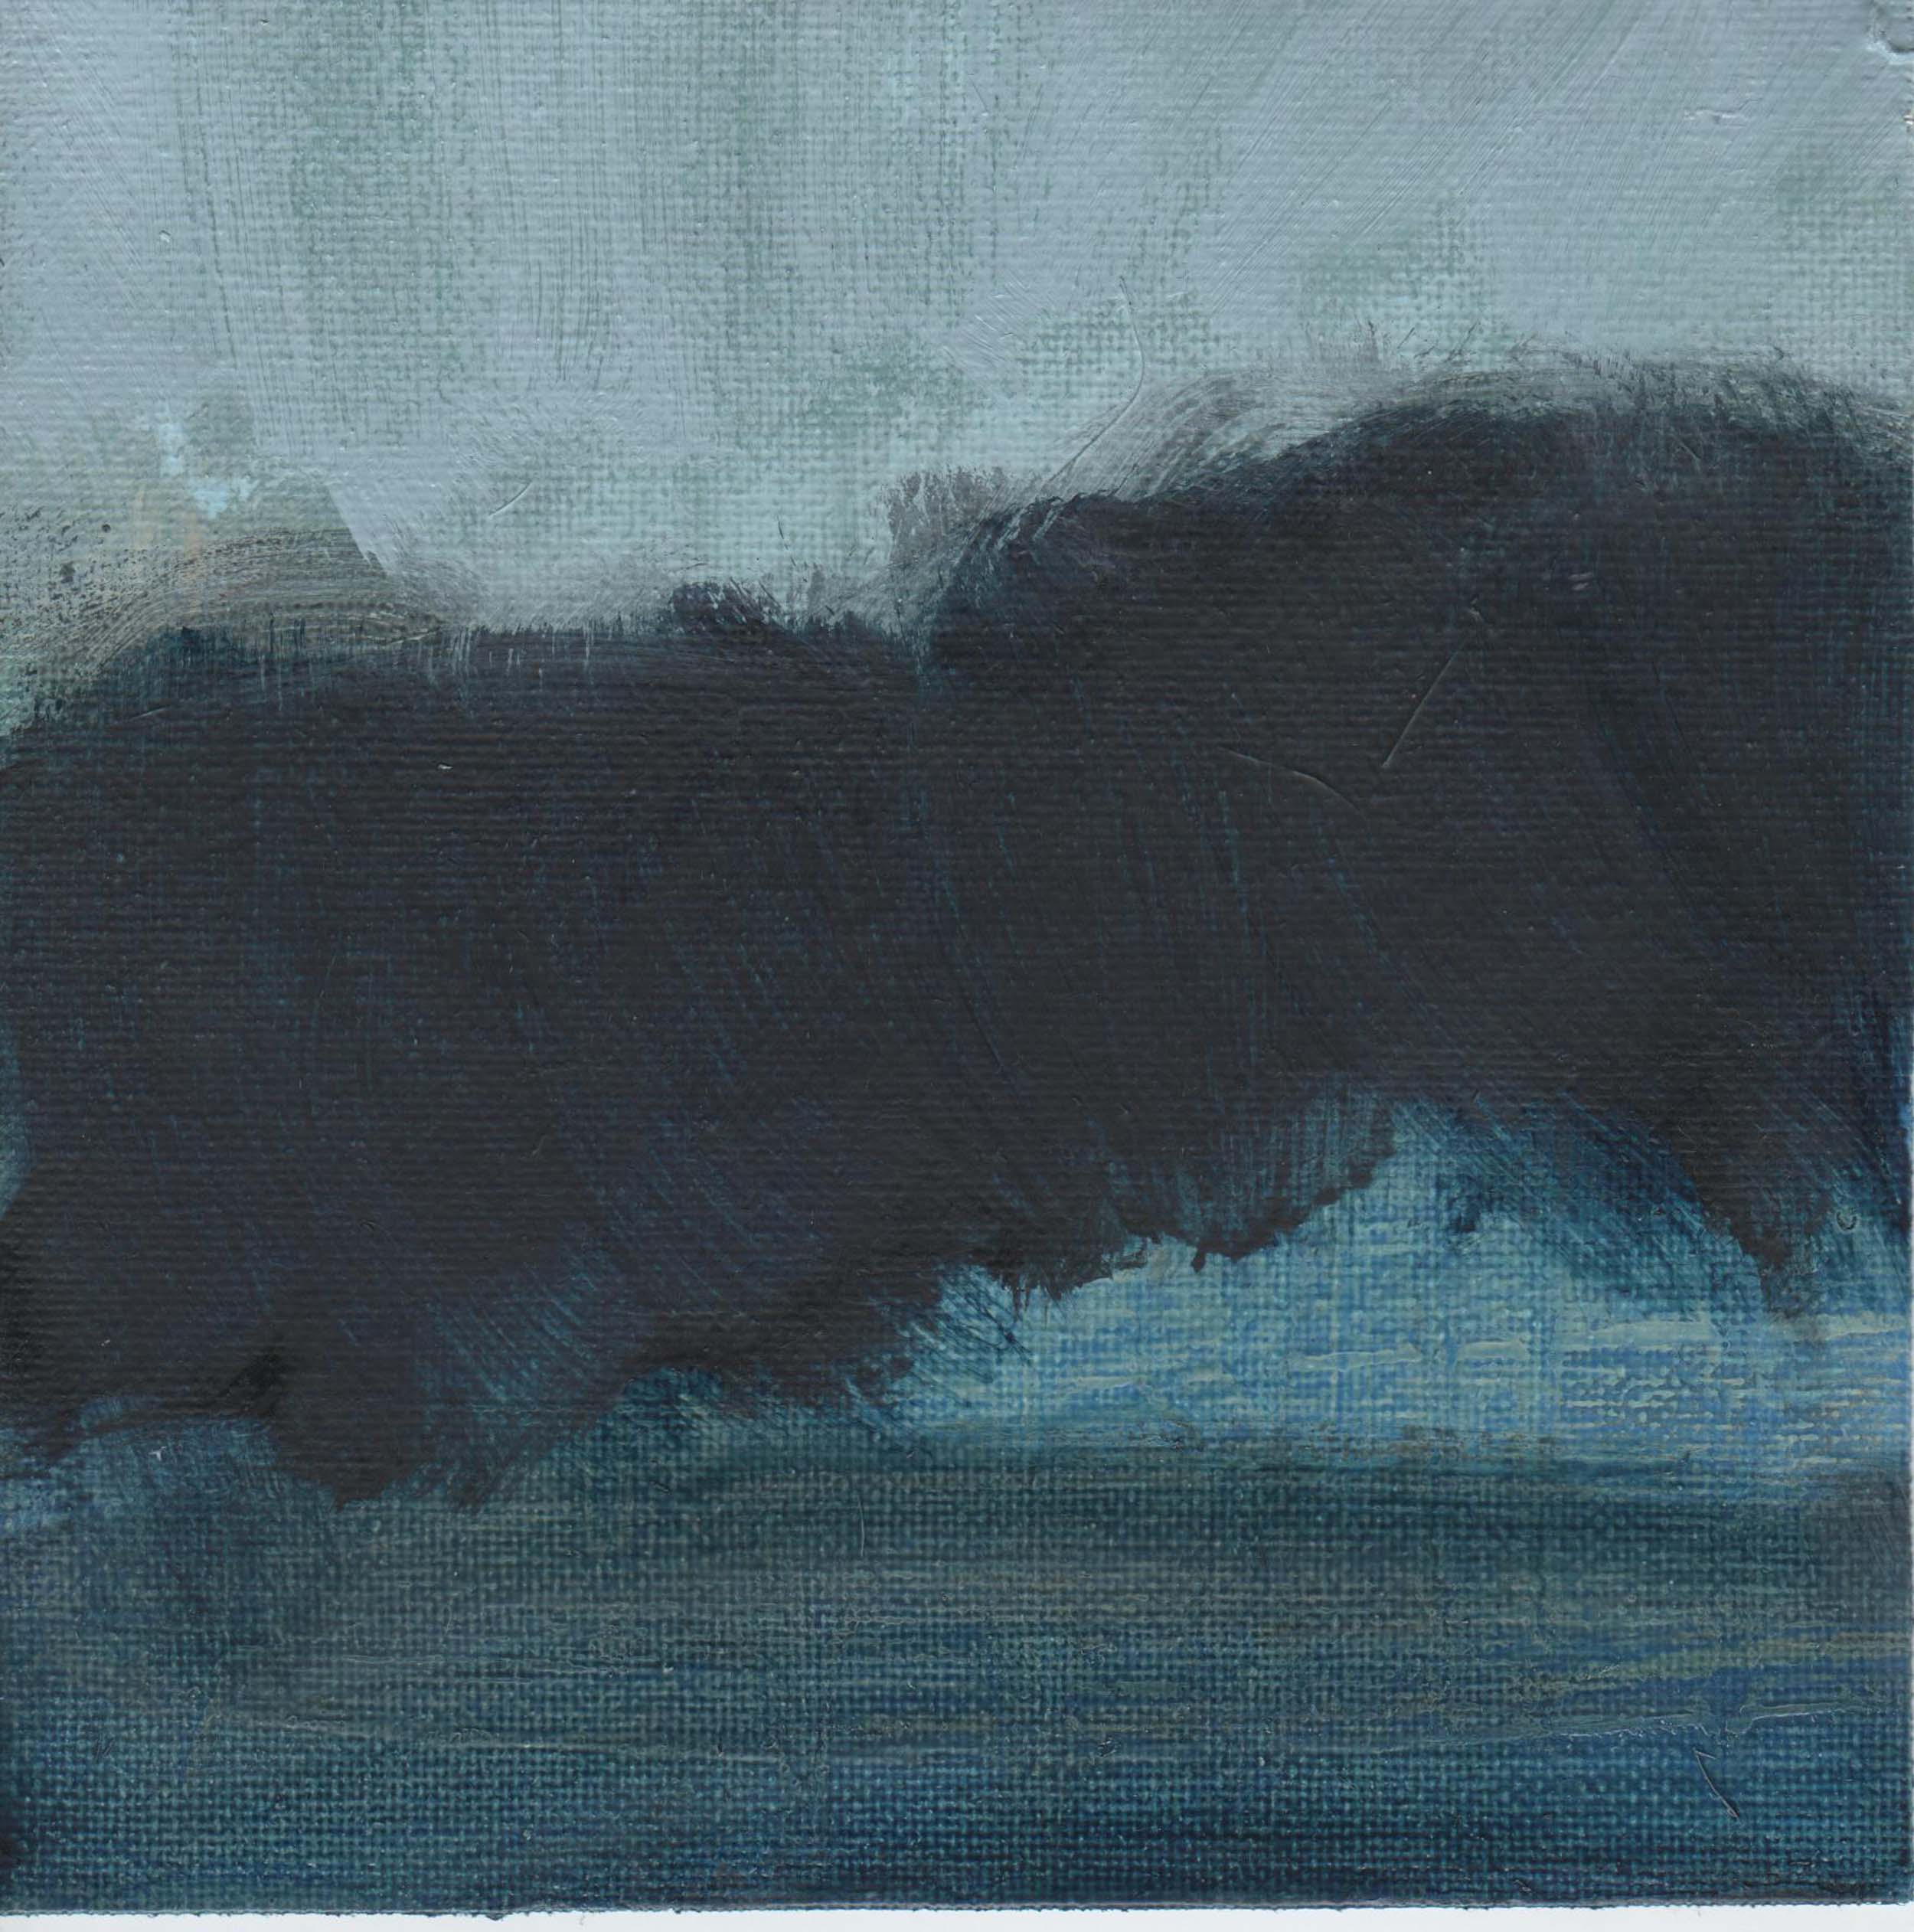 Leah Beggs 2008 - Rain Beckons -Oil on Unstretched Canvas-15 x 15 cm_sml.jpg